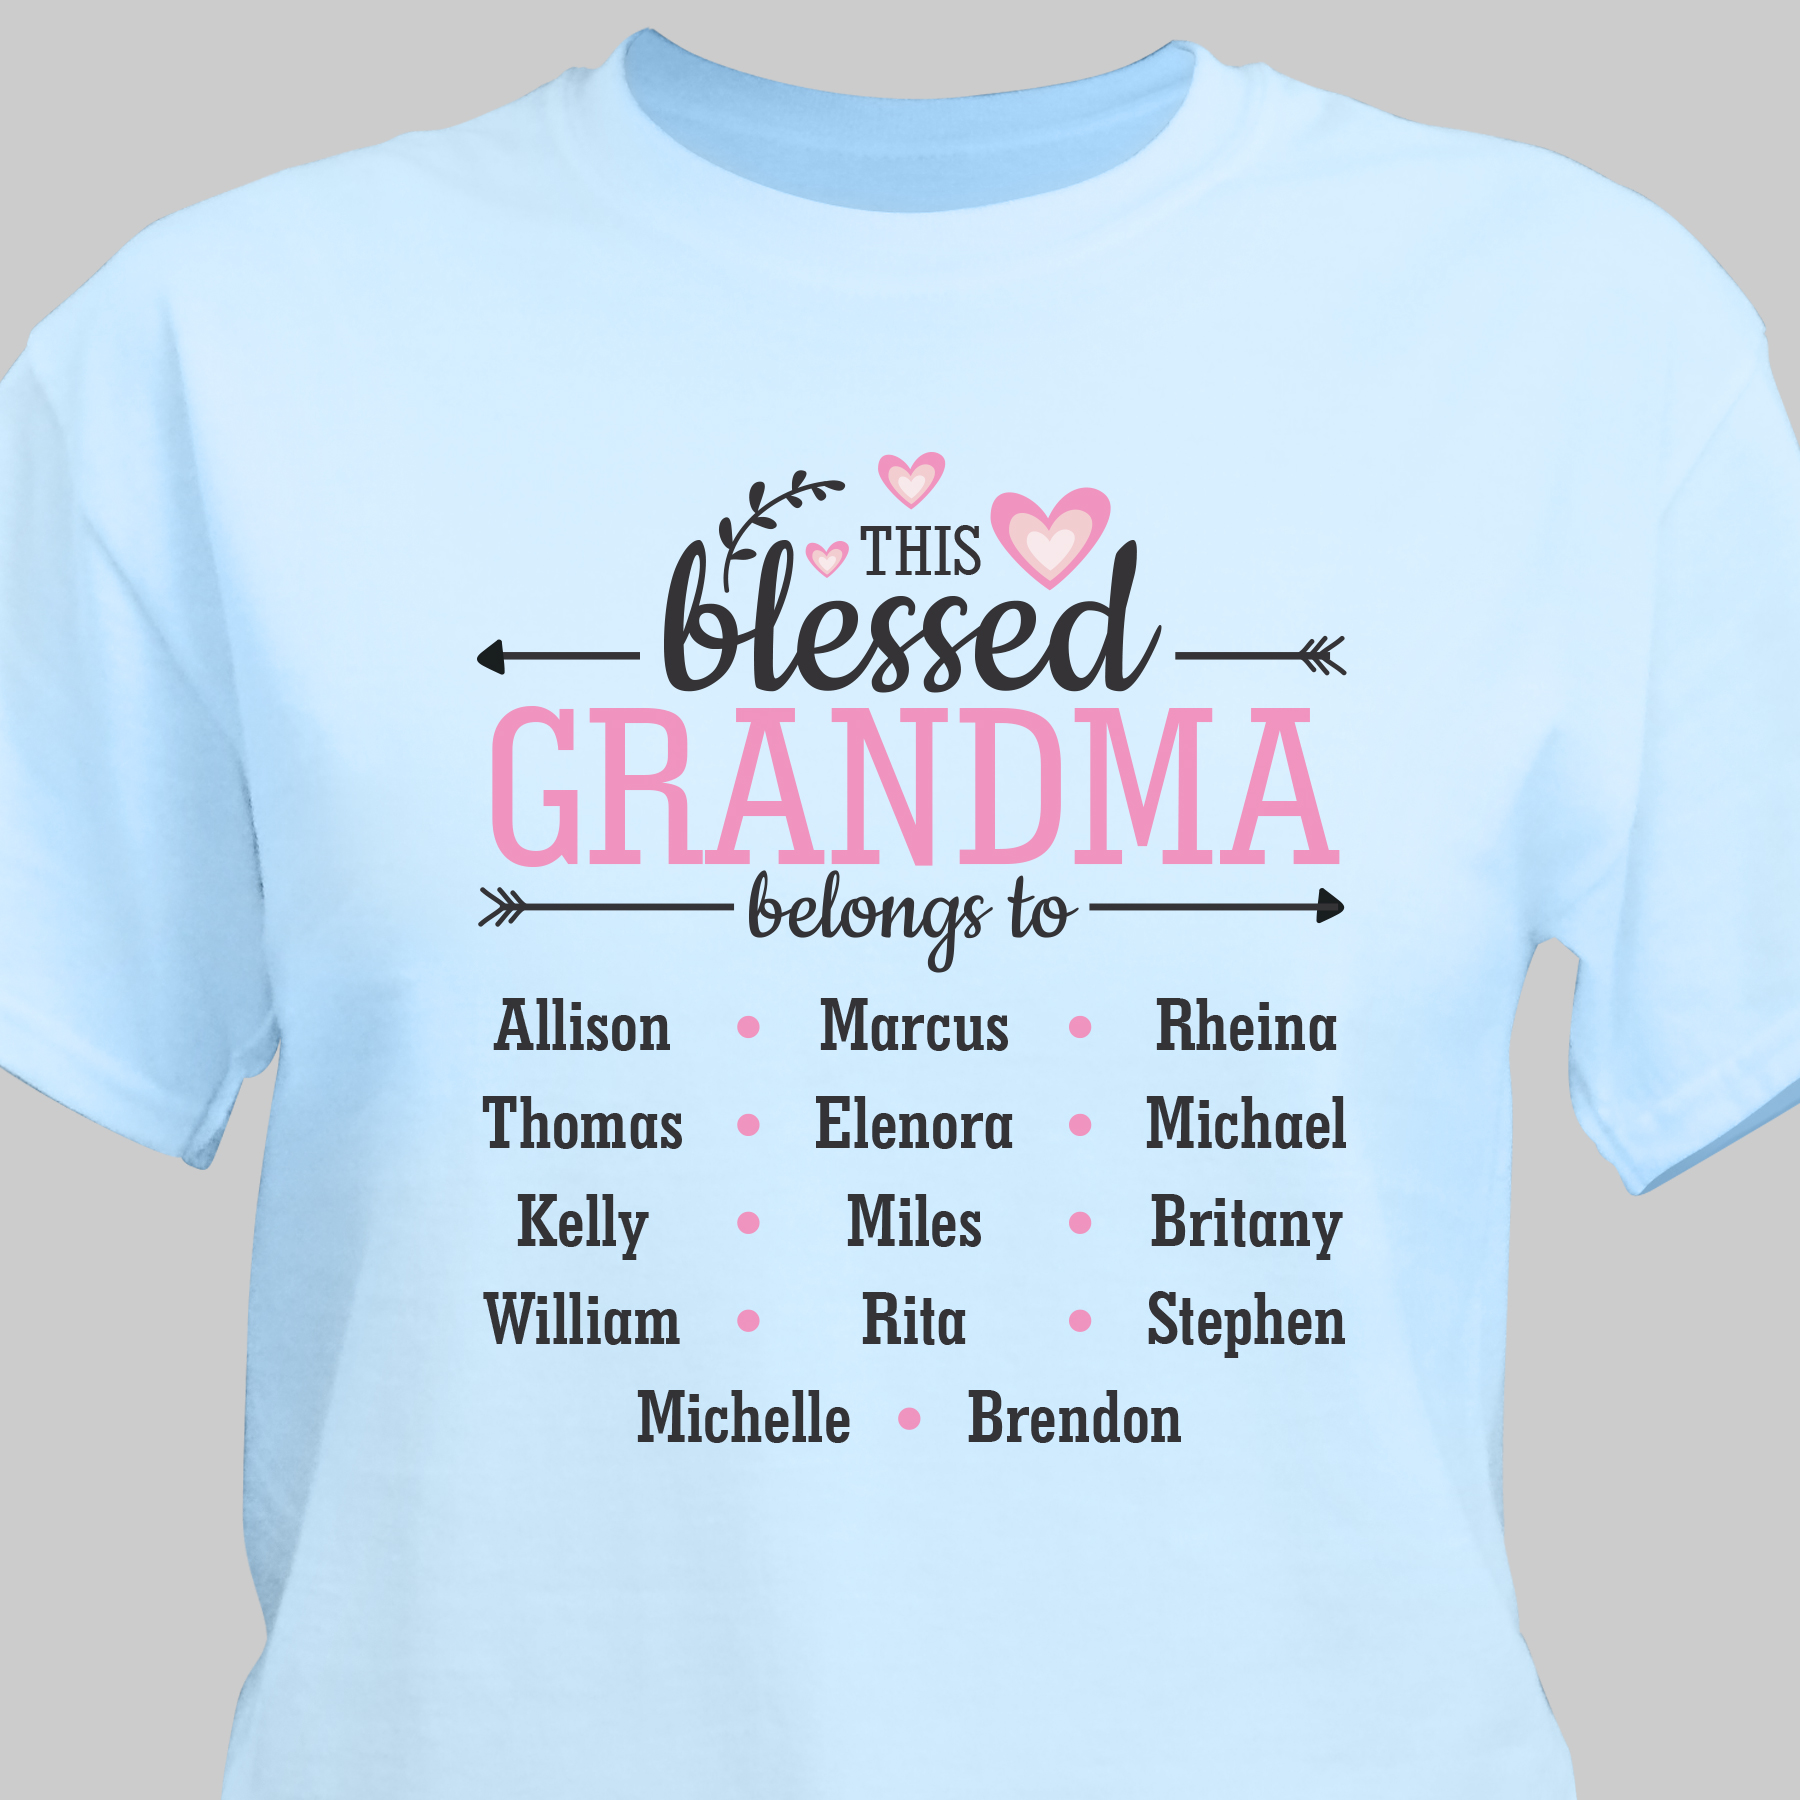 Grandma Gifts | Shirts For Grandma